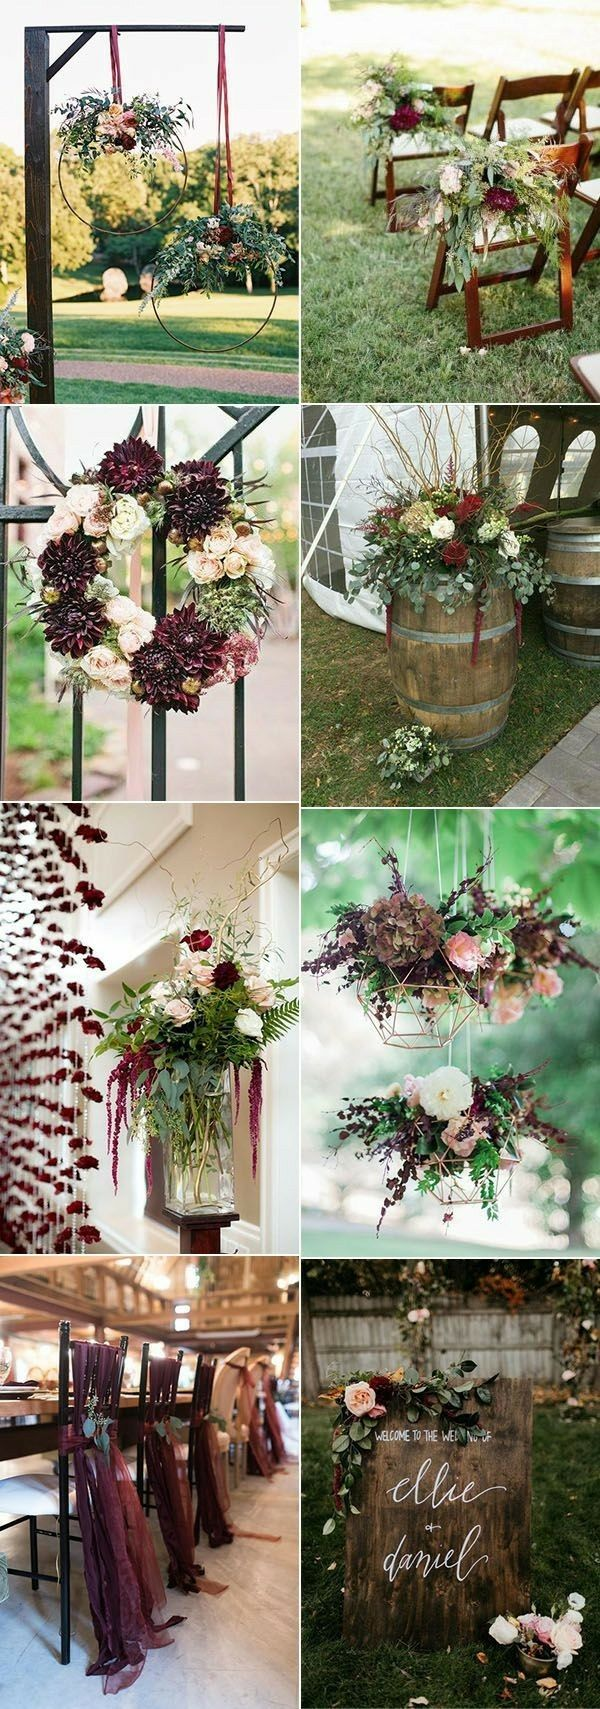 Wedding decorations at church november 2018  best Burgundy wedding flowers images on Pinterest  Wedding